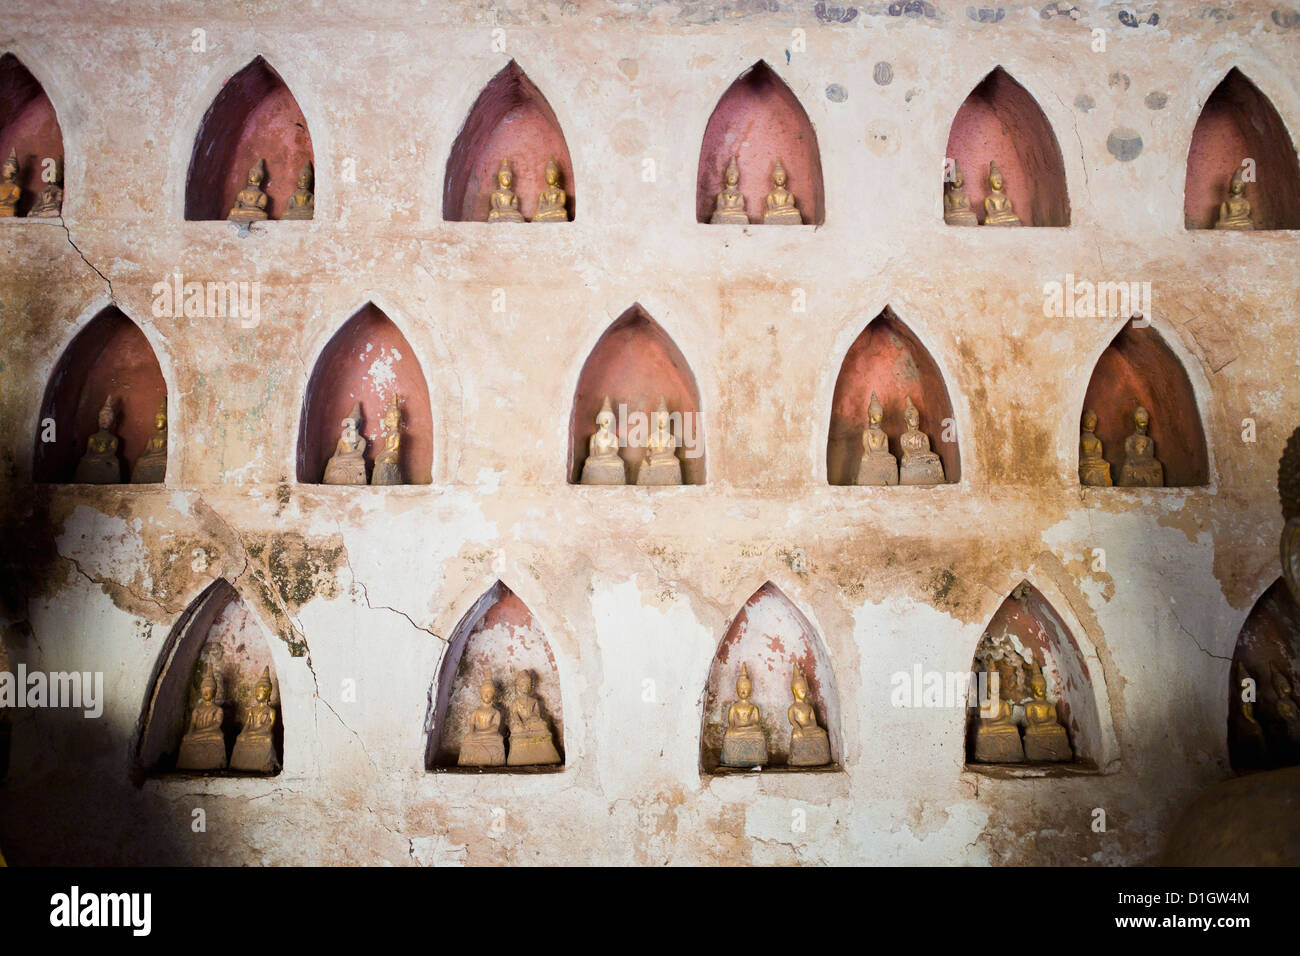 Pairs of small Buddha statues at Wat Si Saket, the most famous temple in Vientiane, Laos, Indochina, Southeast Asia, - Stock Image